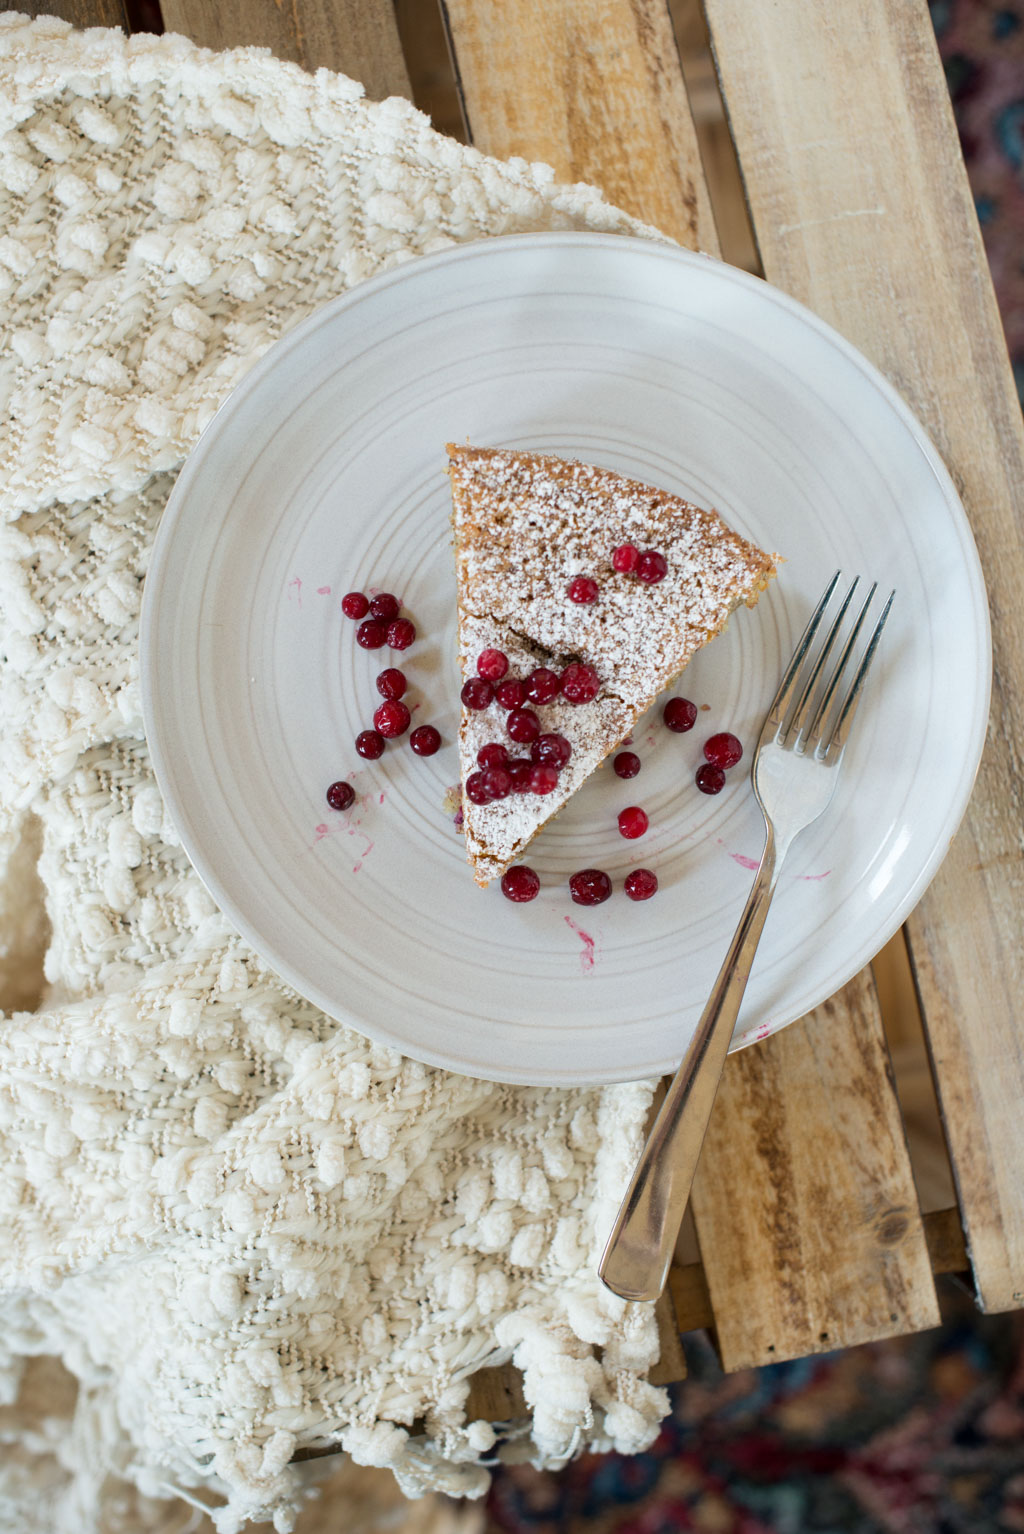 Almond and Lingonberry Cake